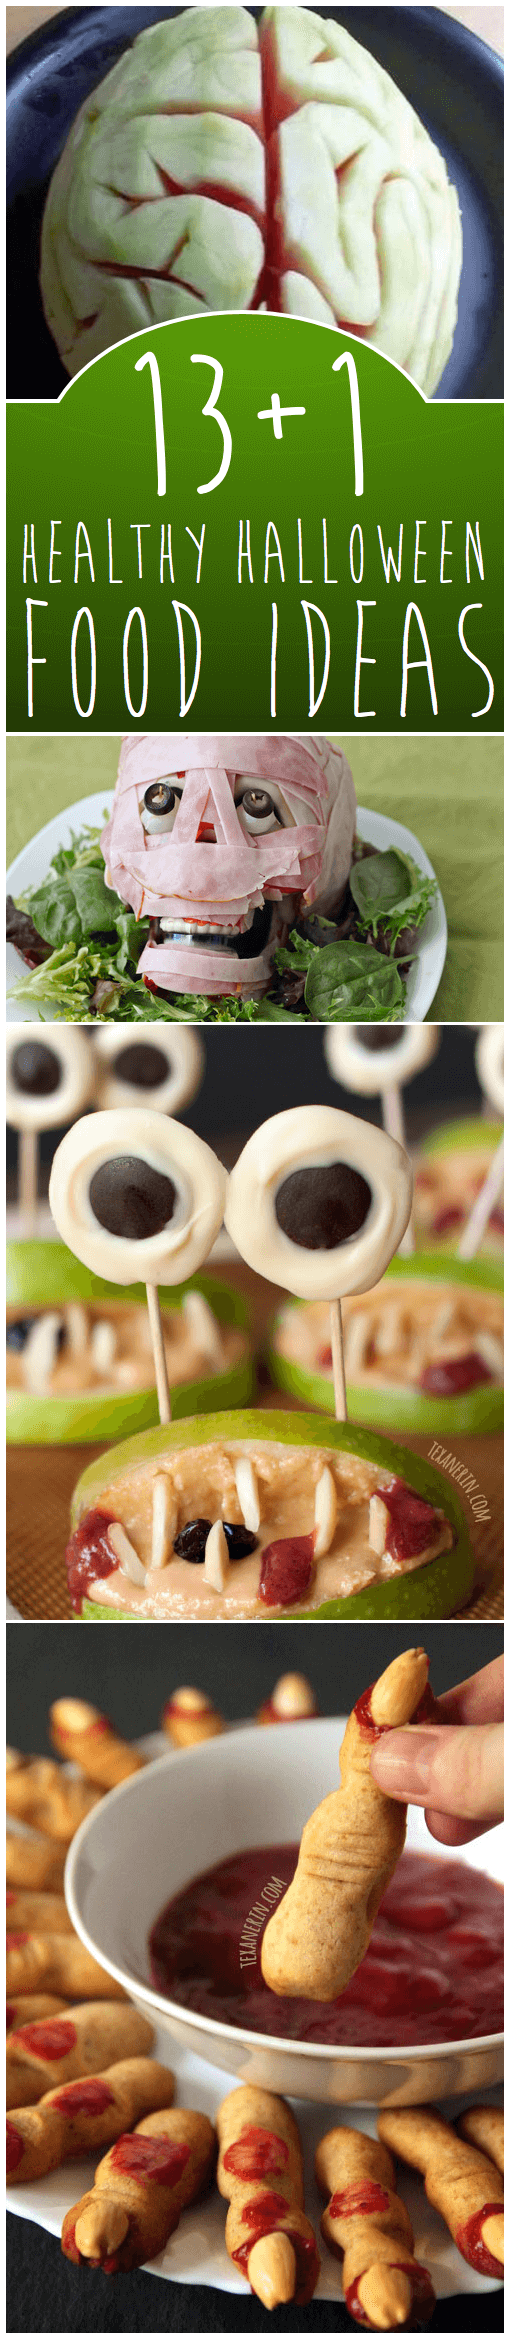 13+1 Scary DIY Halloween Food Ideas - And All Of These Are Healthy!